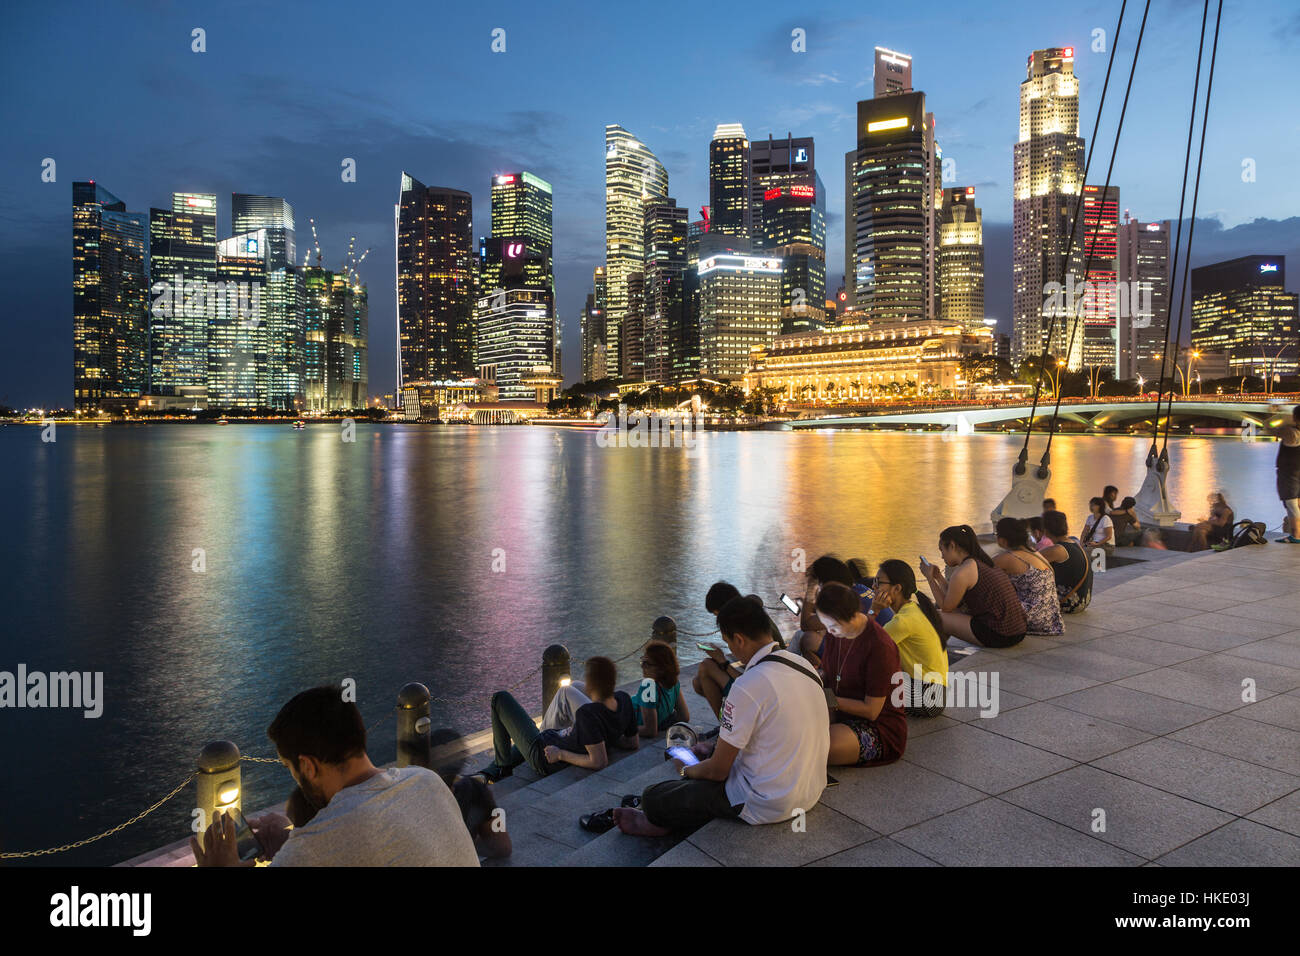 SINGAPORE, SINGAPORE - FEBRUARY 22 2016: Tourists enjoy the view on the famous Singapore skyline from the marina. - Stock Image